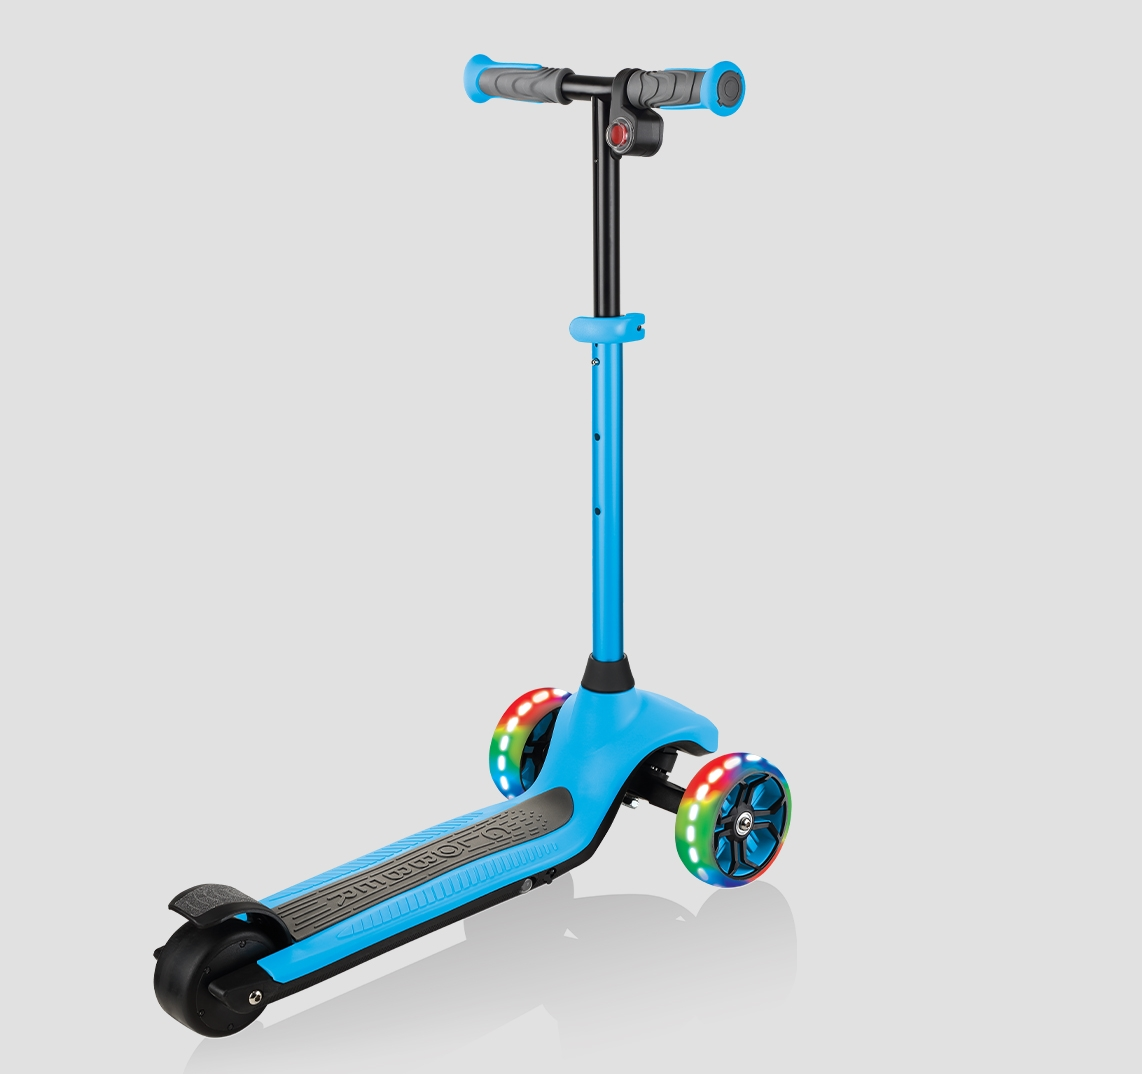 Globber-ONE-K-E-MOTION-4-3-wheel-electric-scooter-for-kids-with-dual-braking-system